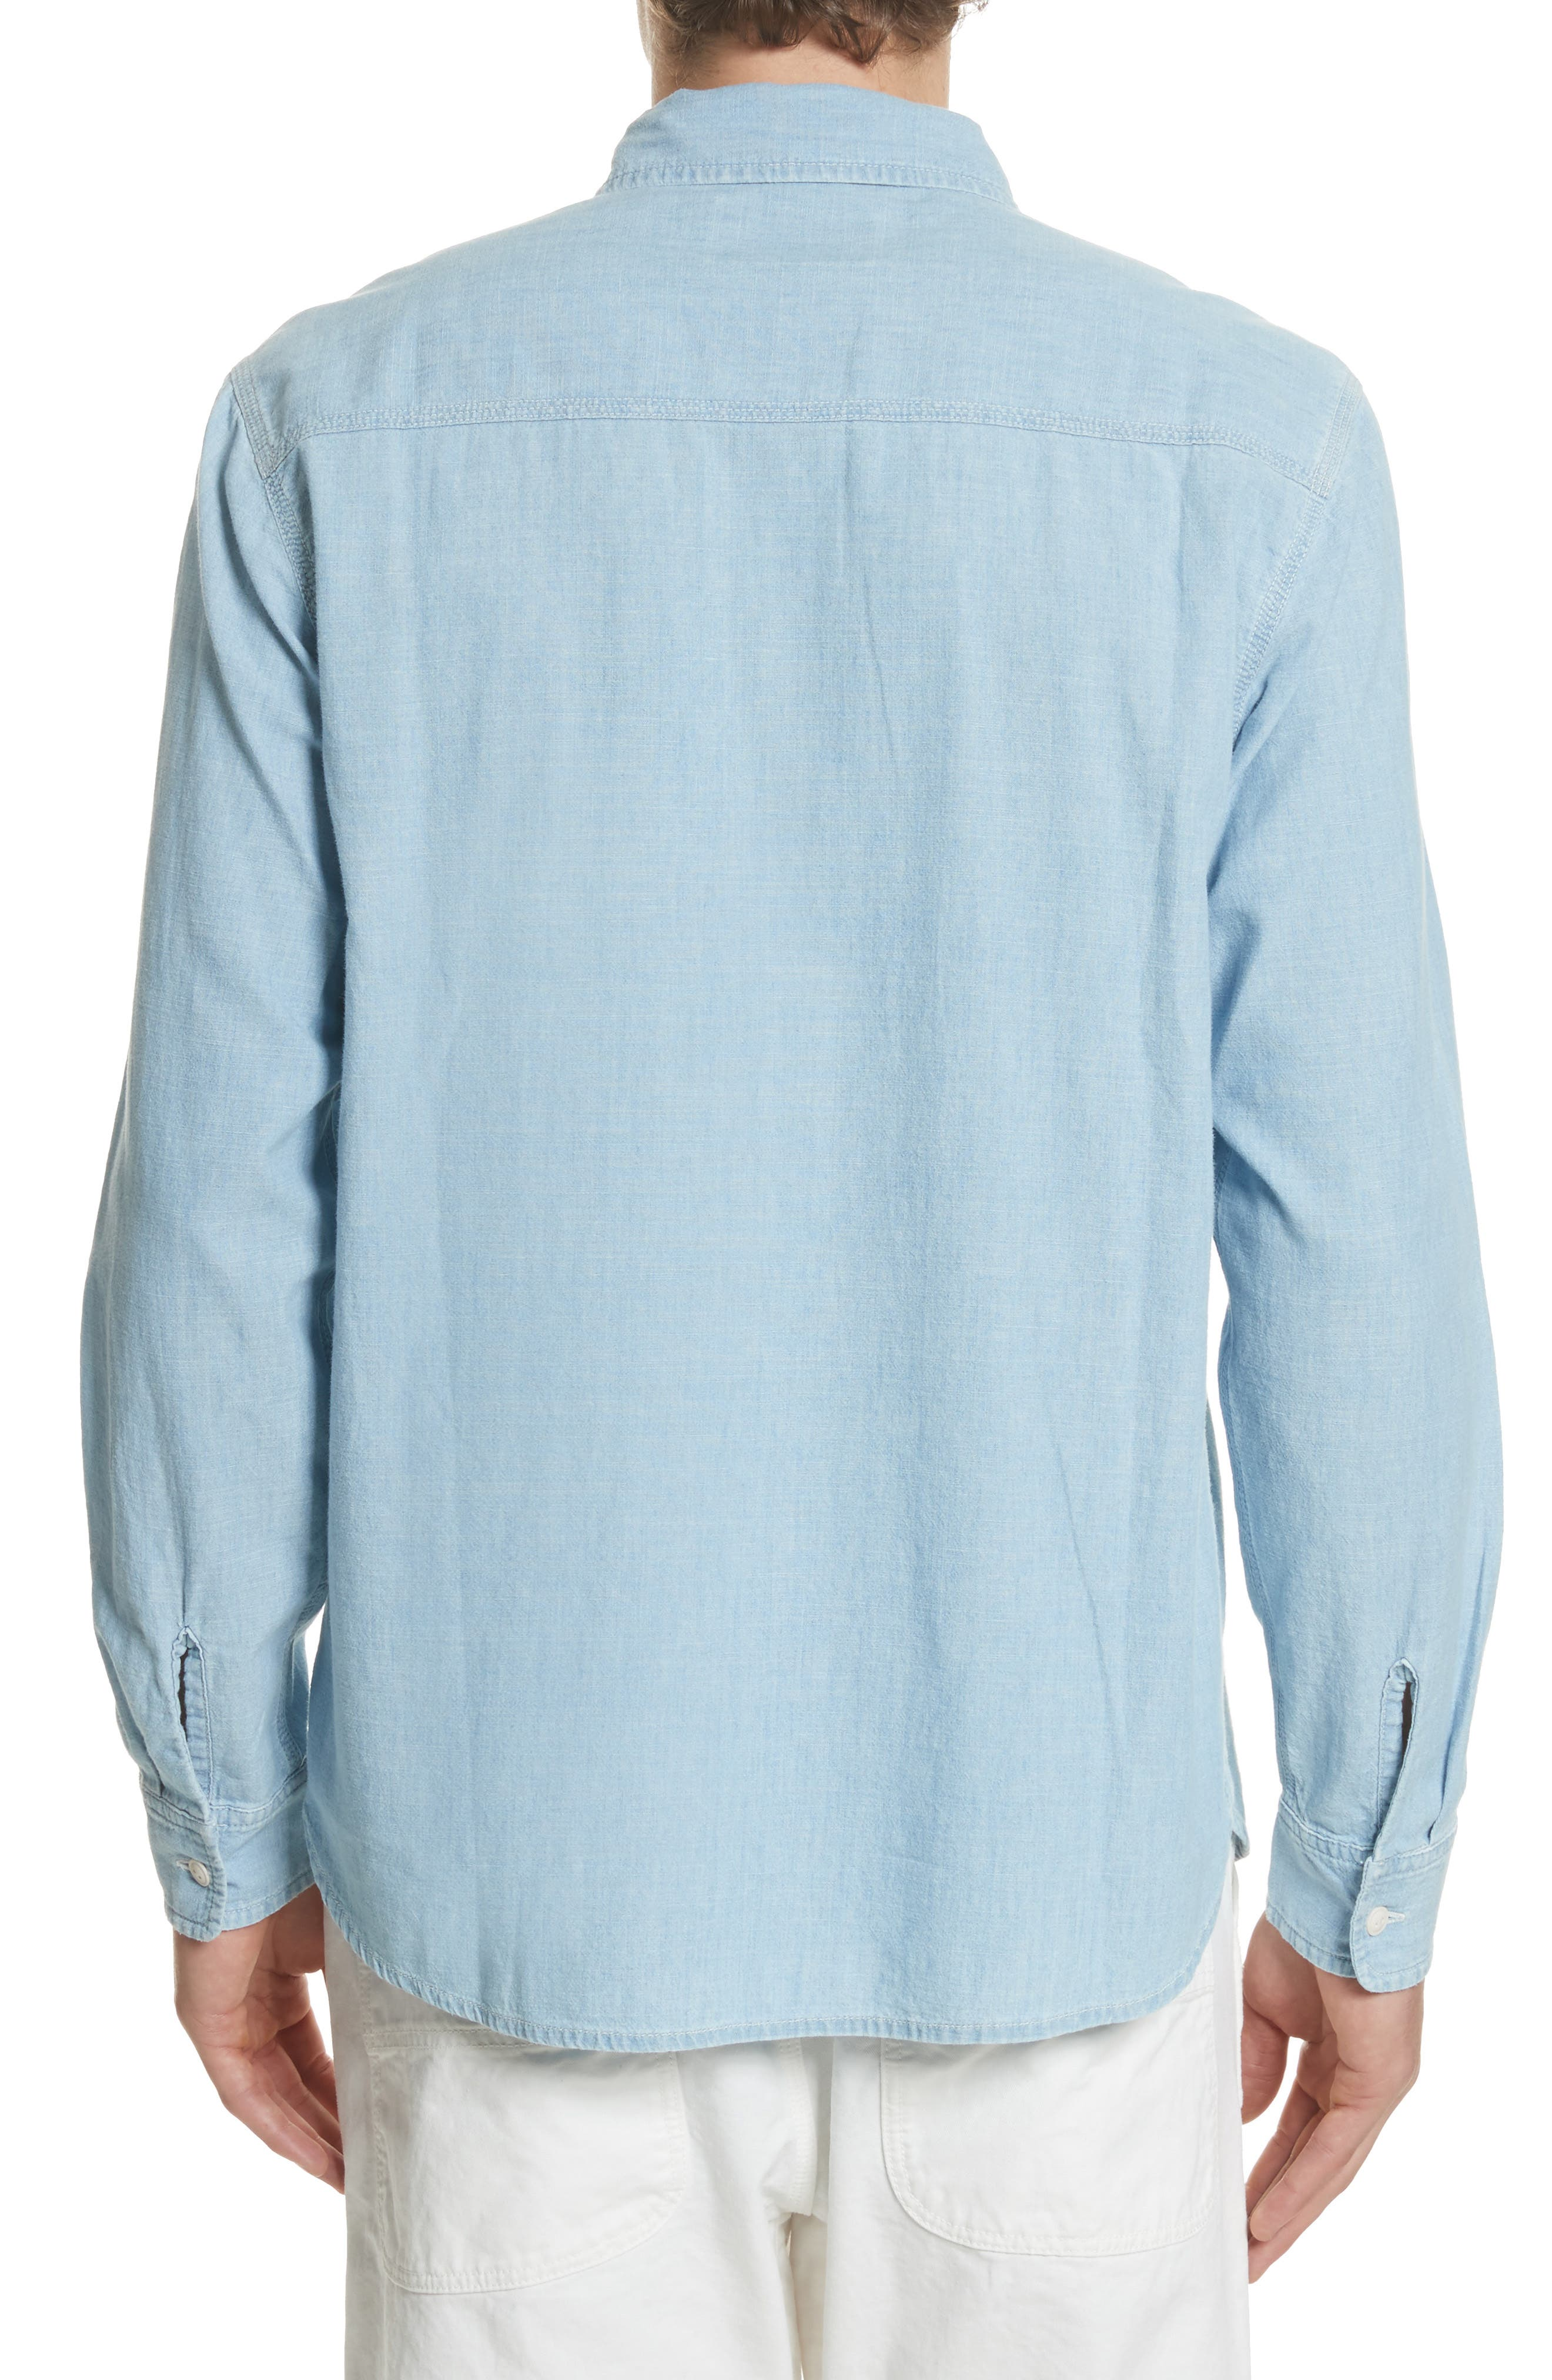 Clink Chambray Shirt,                             Alternate thumbnail 2, color,                             Blue Stone Washed